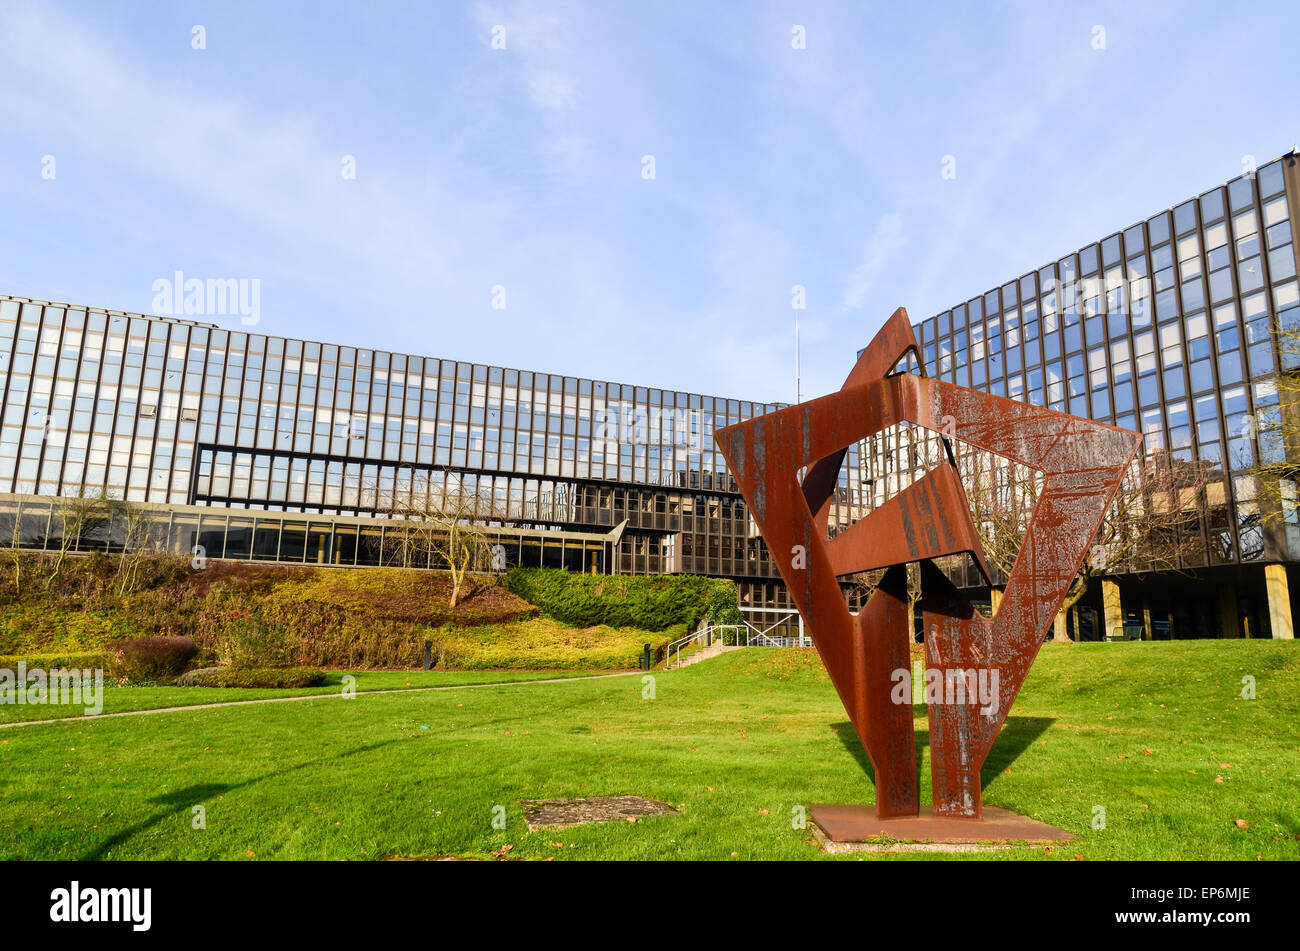 Sculpture at the European Commission (Bâtiment Jean Monnet) in the European Quarter, Kirchberg, Luxembourg - Stock Image